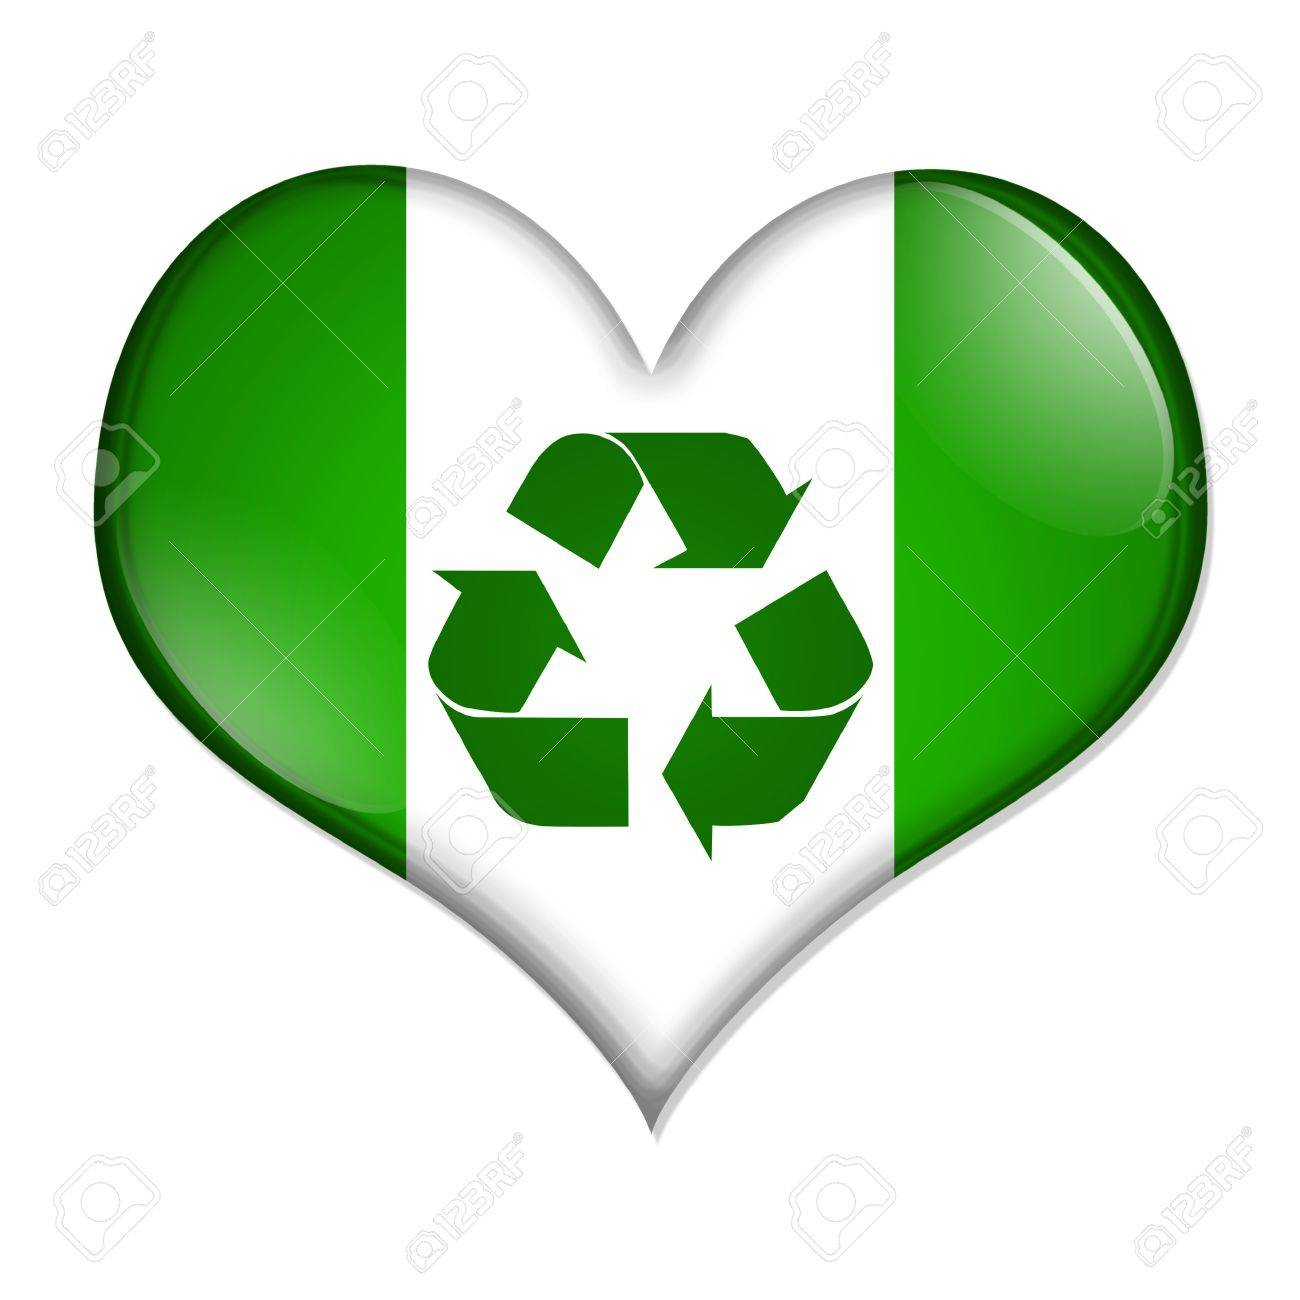 A Green And White Heart Shaped Button With Recycle Symbol Isolated